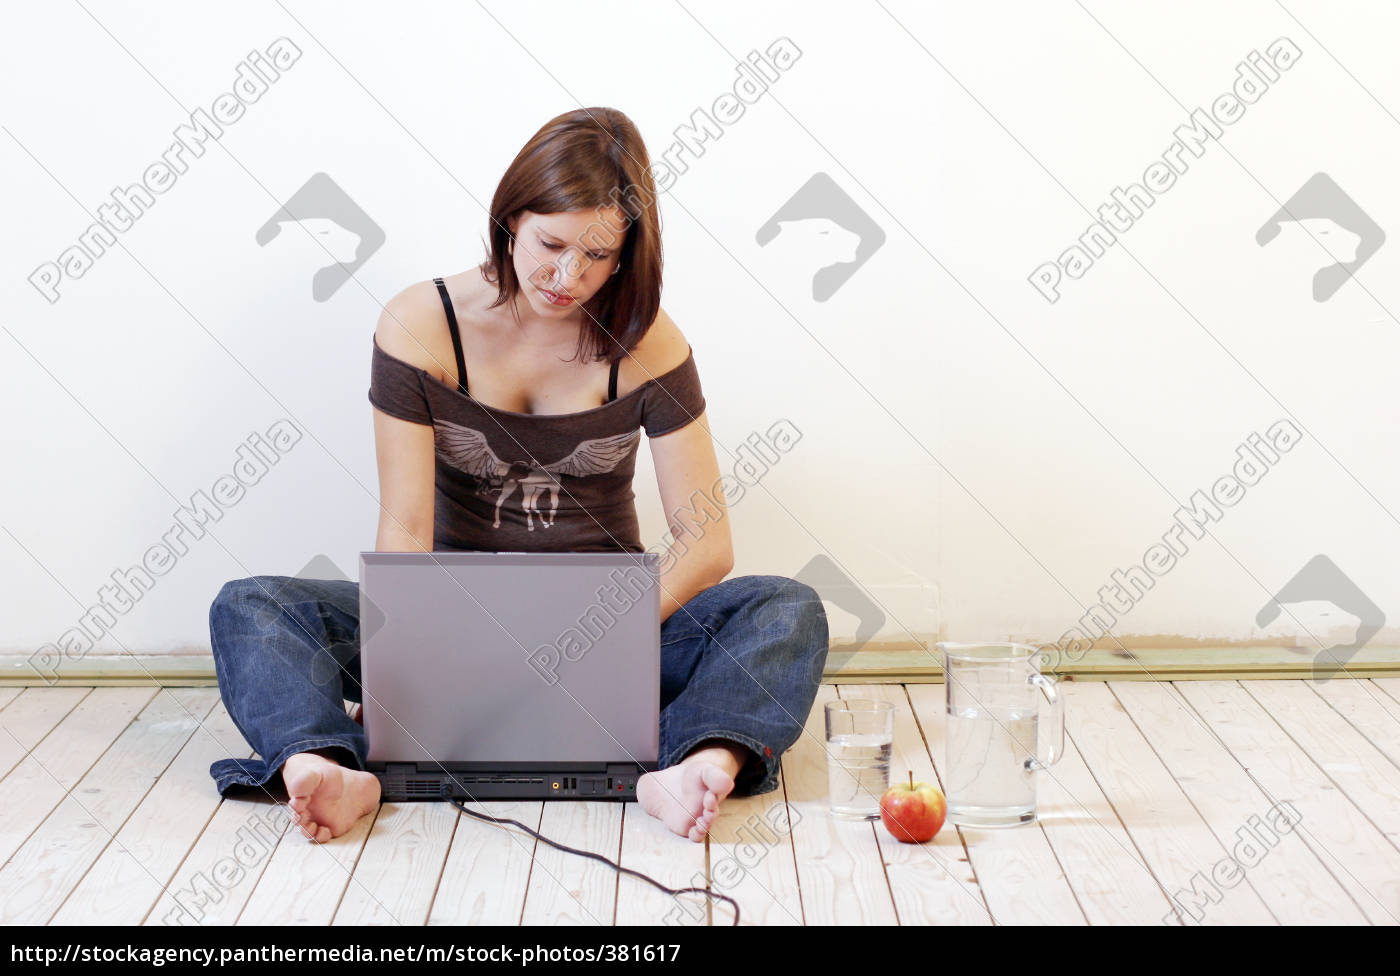 woman, on, laptop - 381617